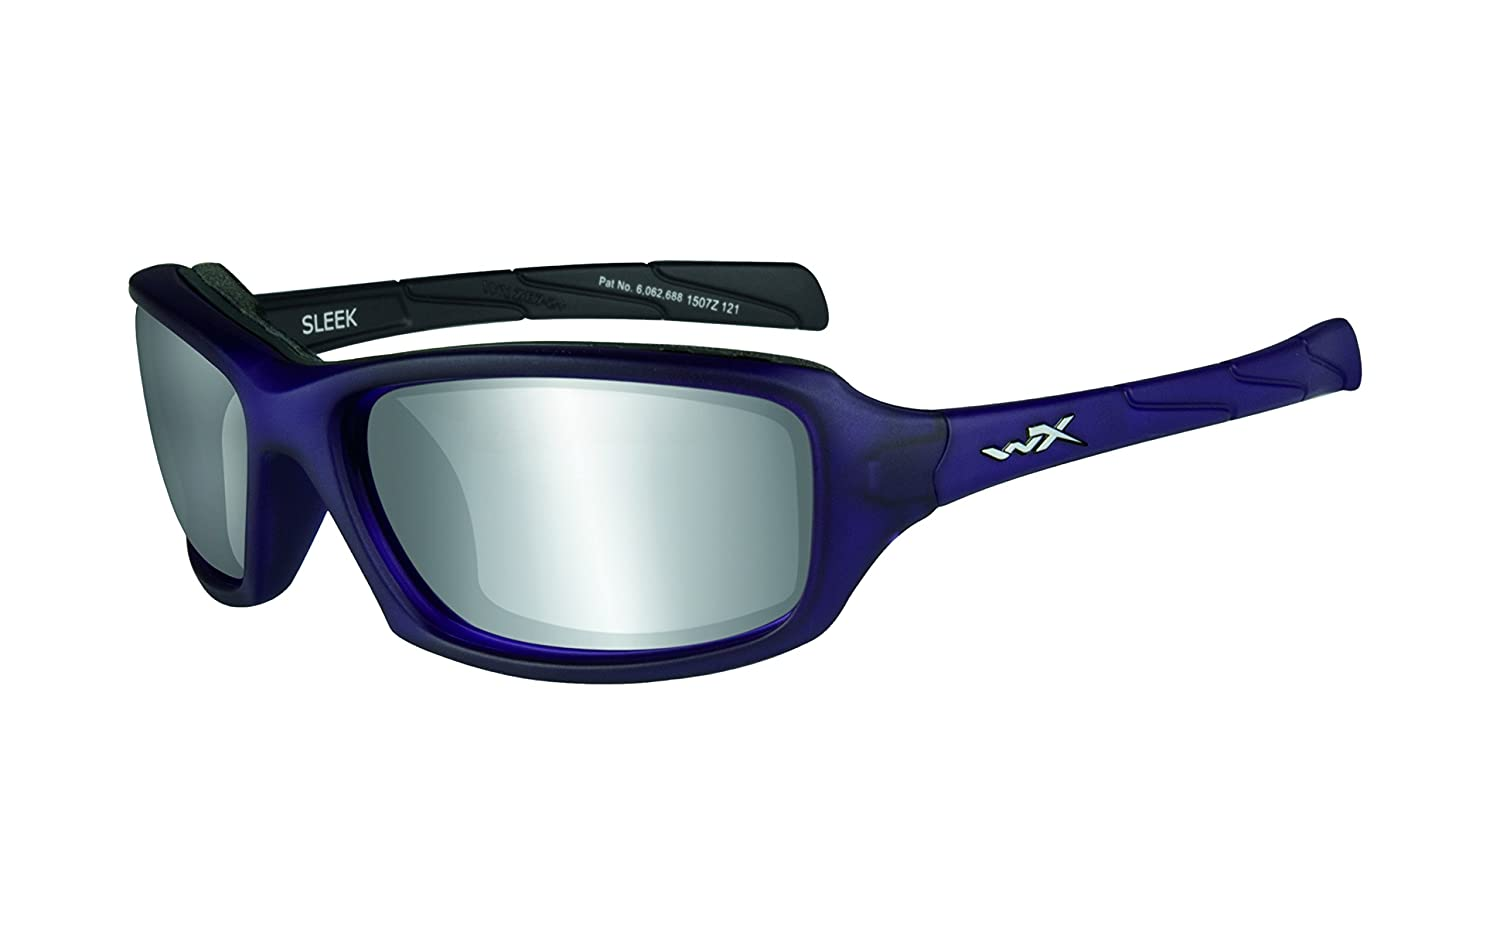 Violet Wiley X Adultes Sleek Lunettes de Protection